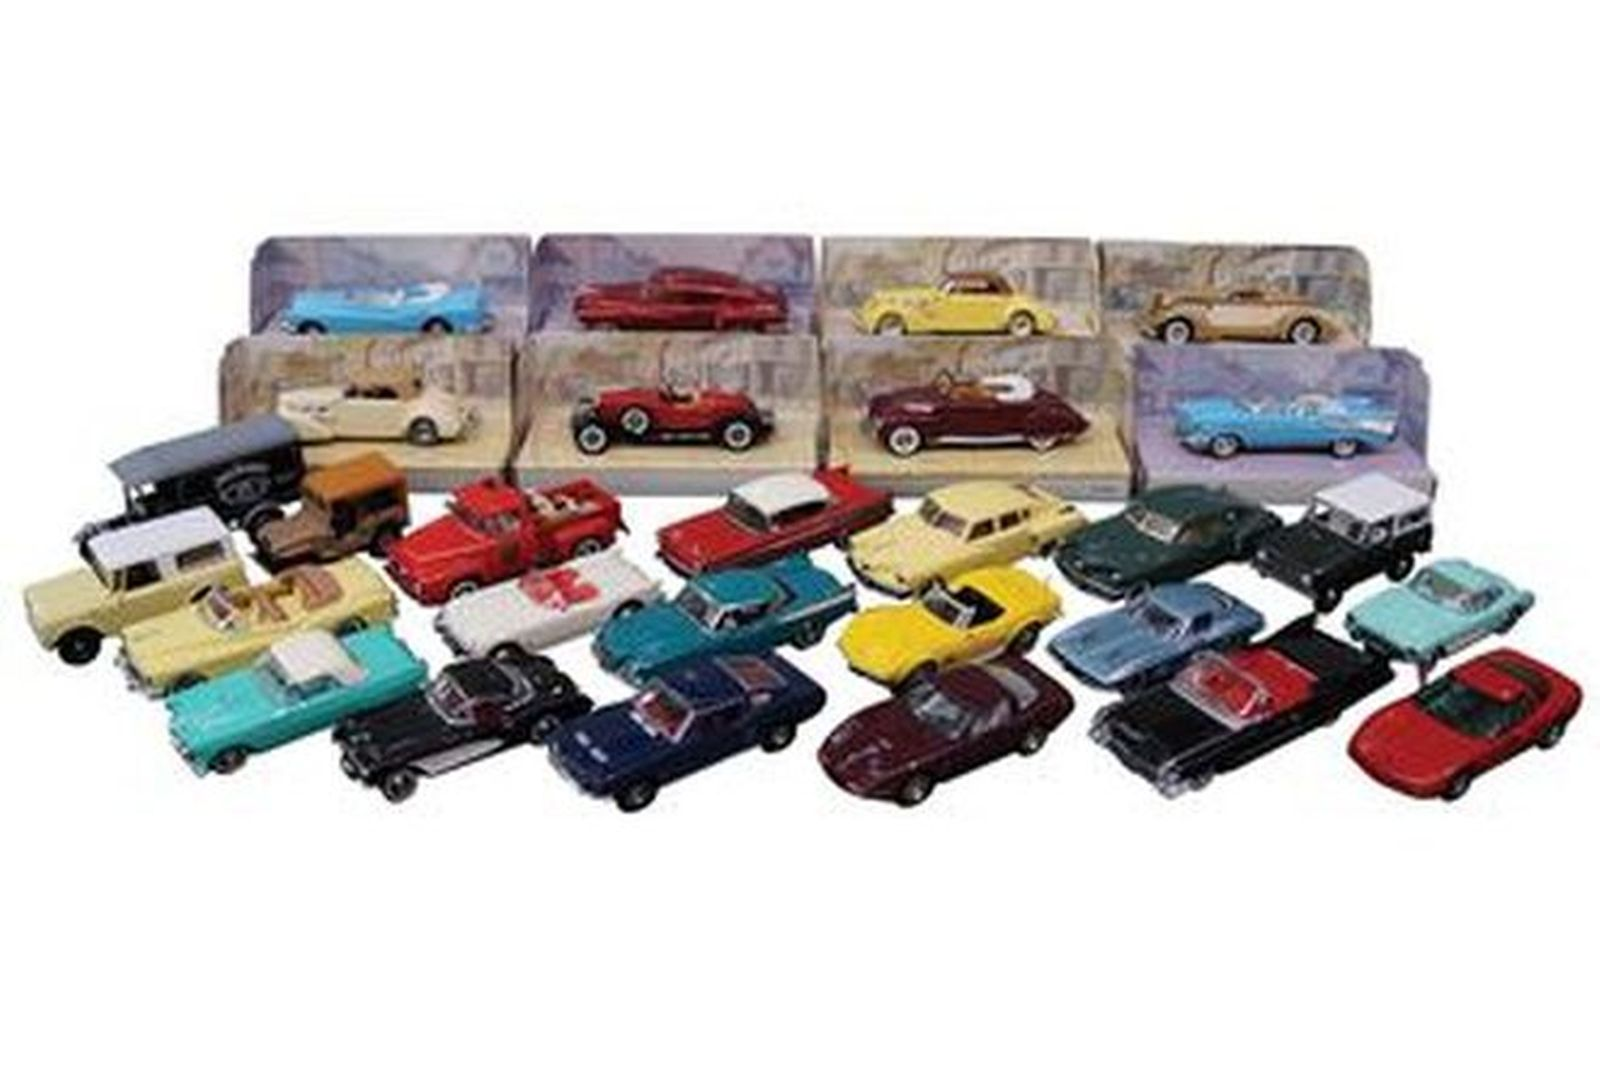 Model Cars - 28 x Assorted USA Classic Cars (Scale: 1:43)